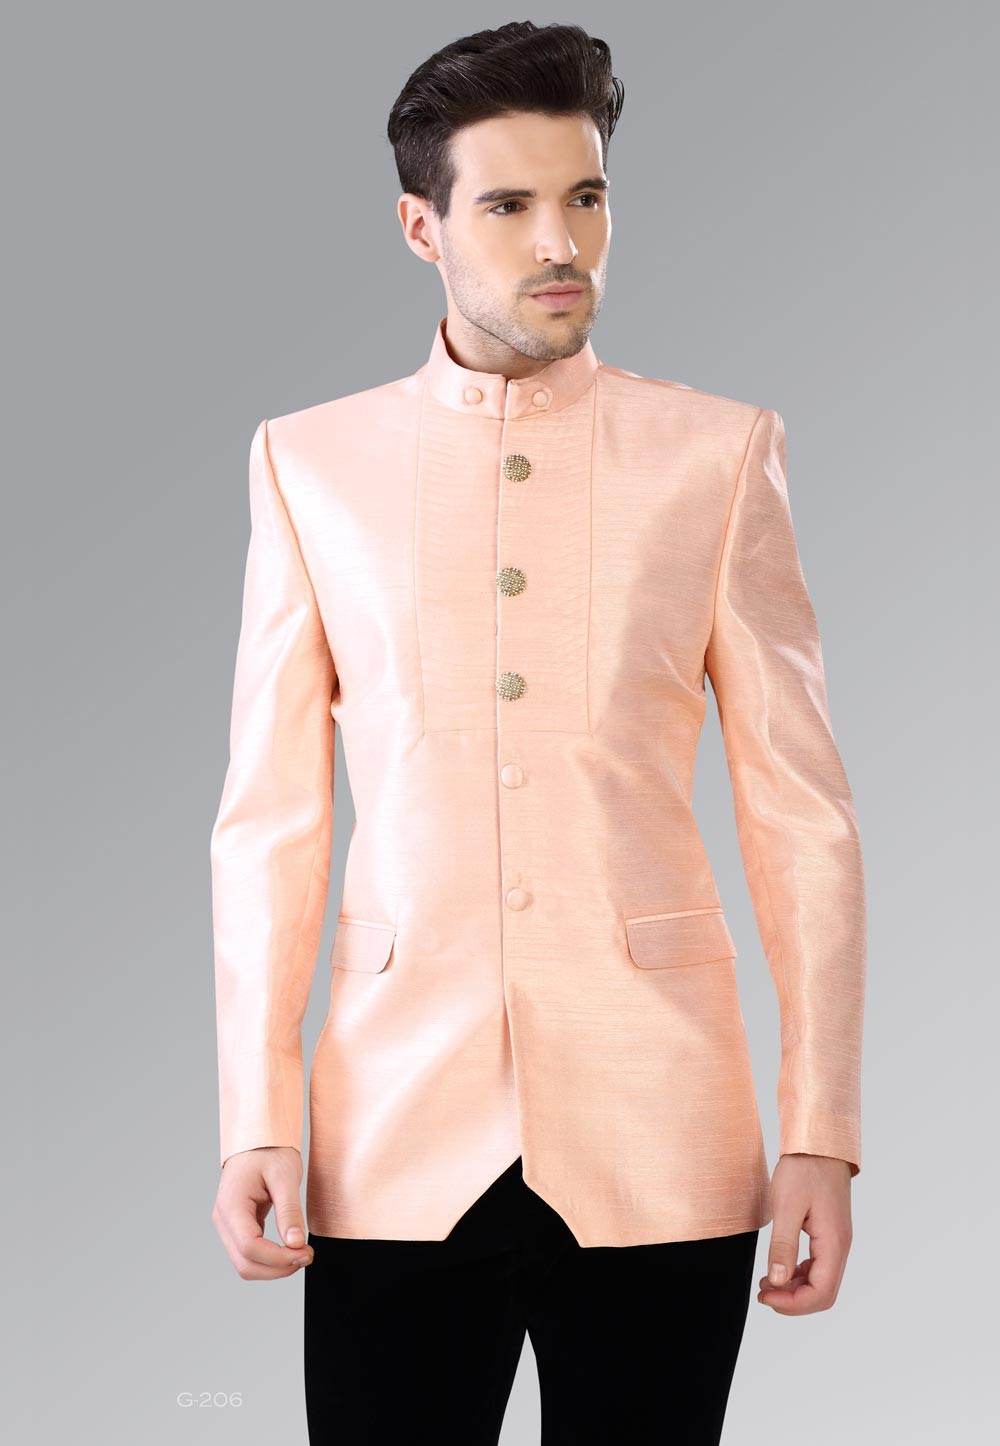 Mens jodhpuri suit online India